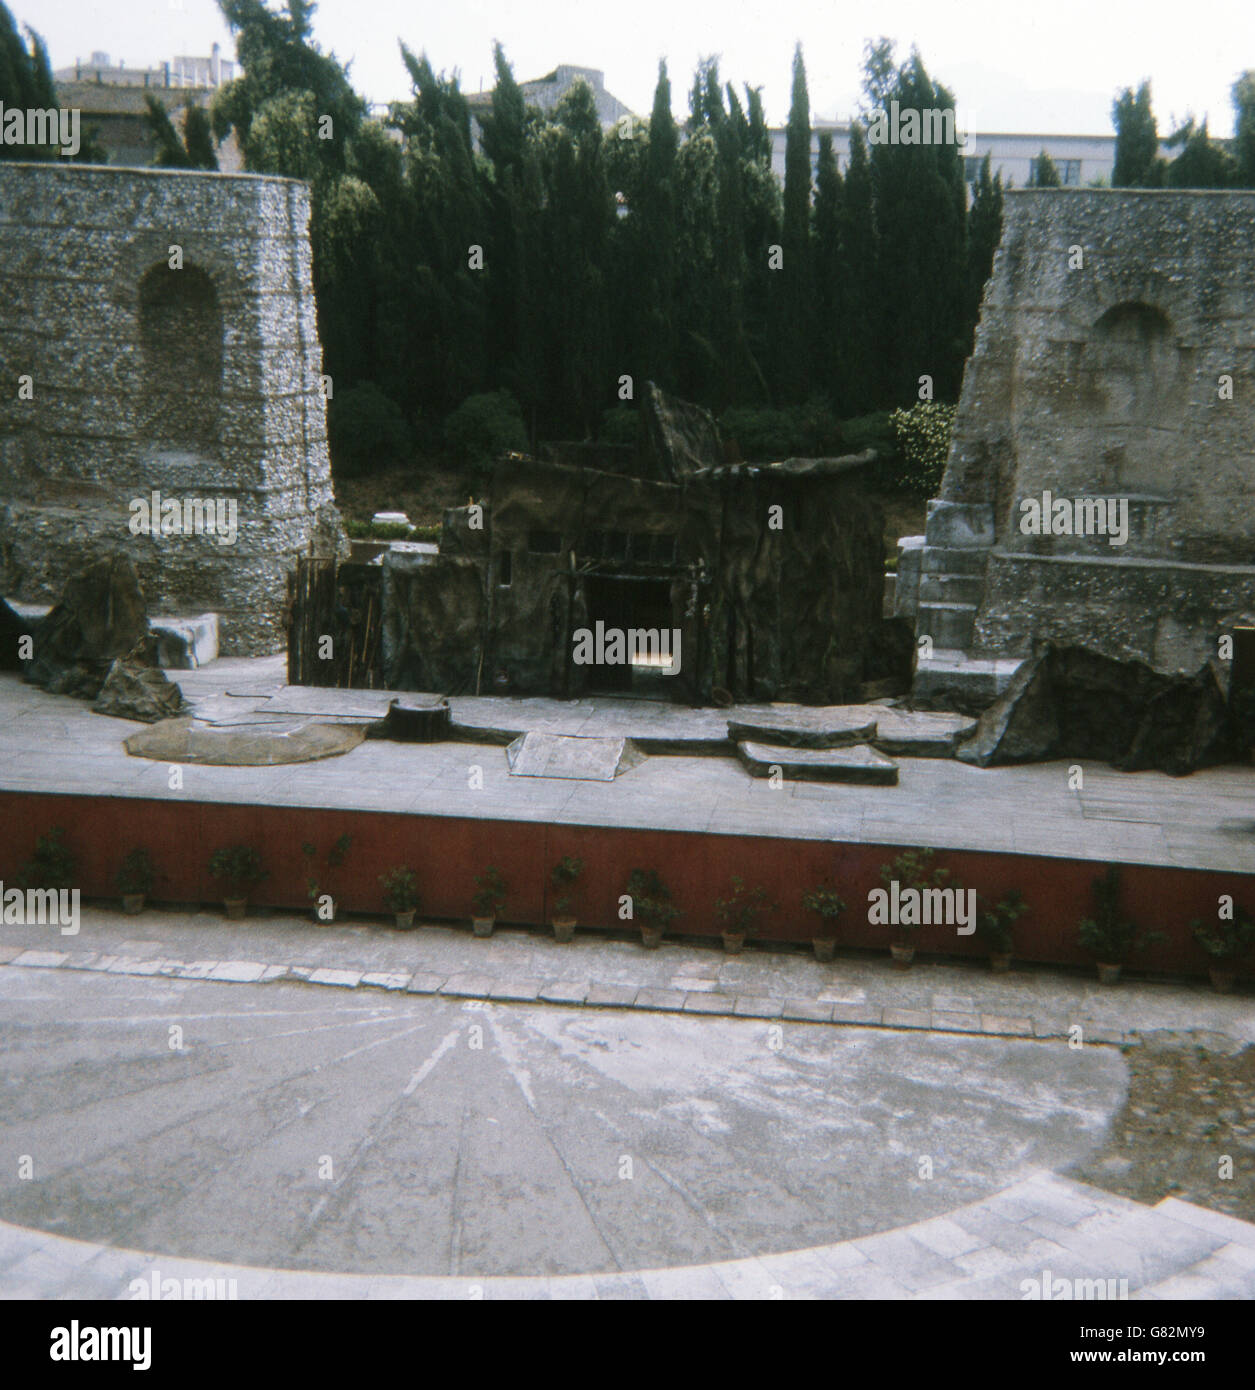 This 1970 photo shows the stage at the  ancient Roman theater in Benevento (ancient Beneventum) in southern Italy - Stock Image